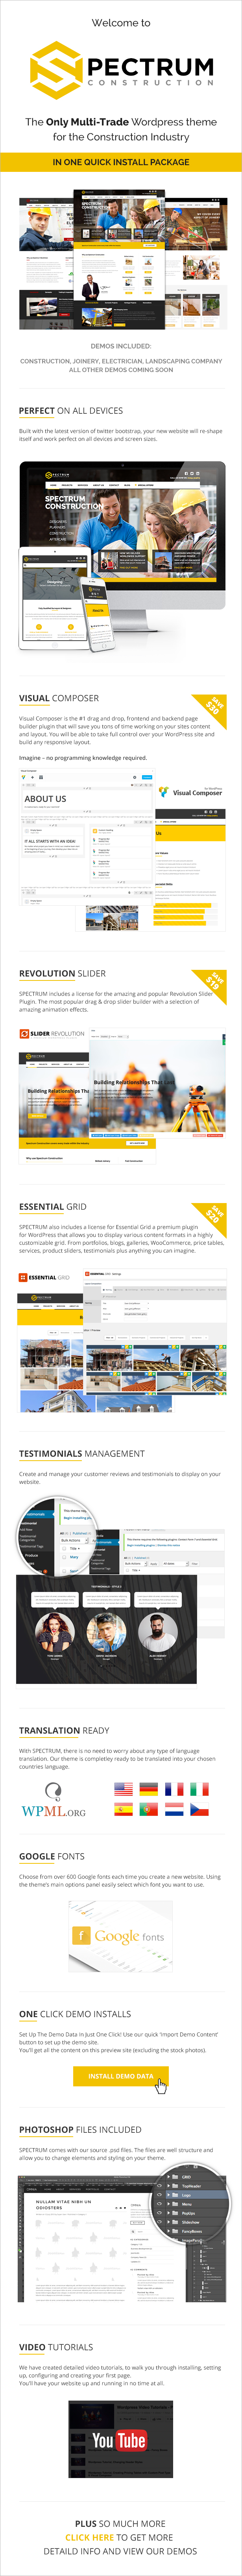 Spectrum - Multi-Trade Construction Business Theme - 20